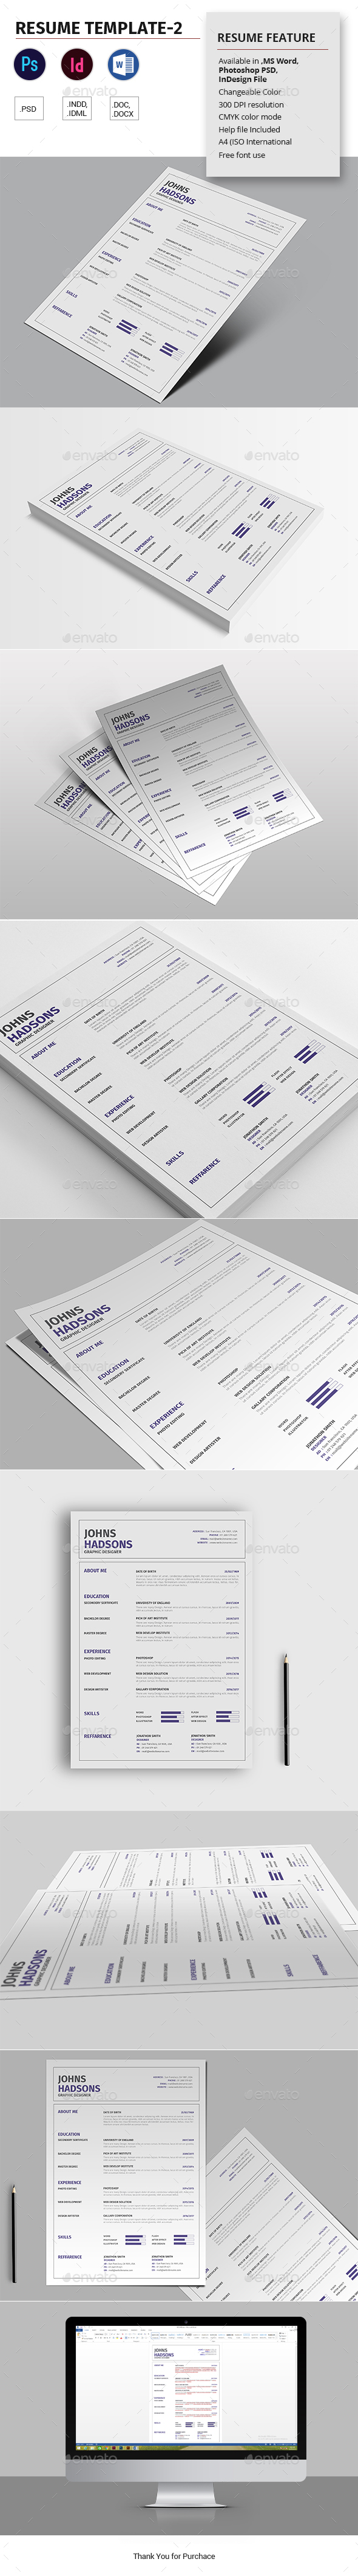 Resume Template-2 - Resumes Stationery